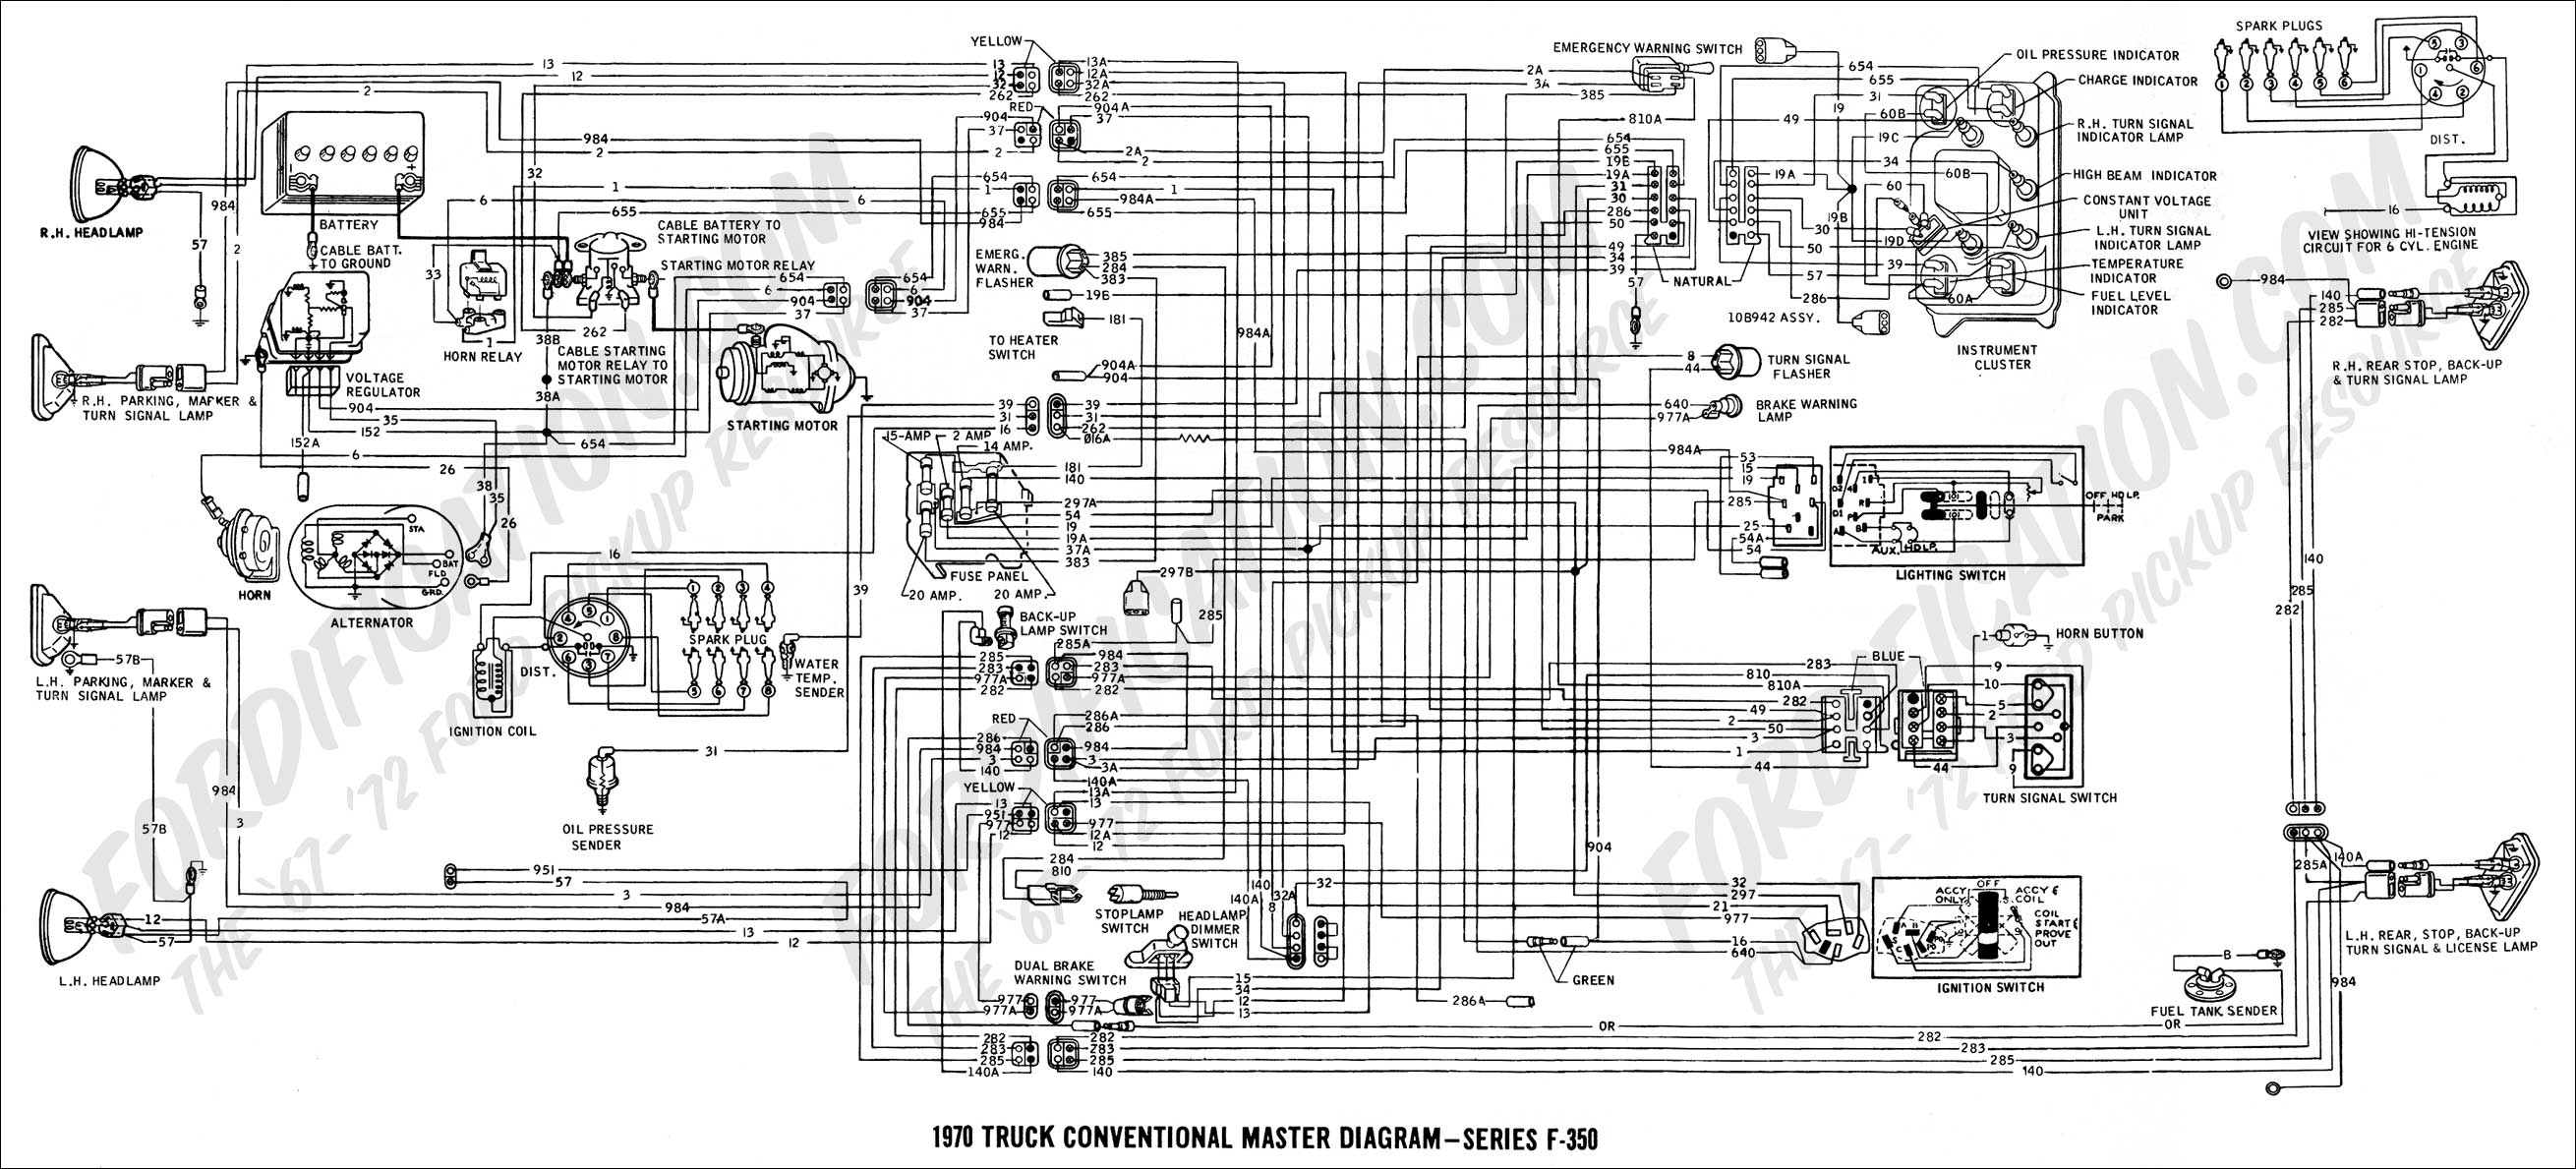 wiring diagram 70F350_master ford truck technical drawings and schematics section h wiring 1959 ford wiring diagram at gsmx.co